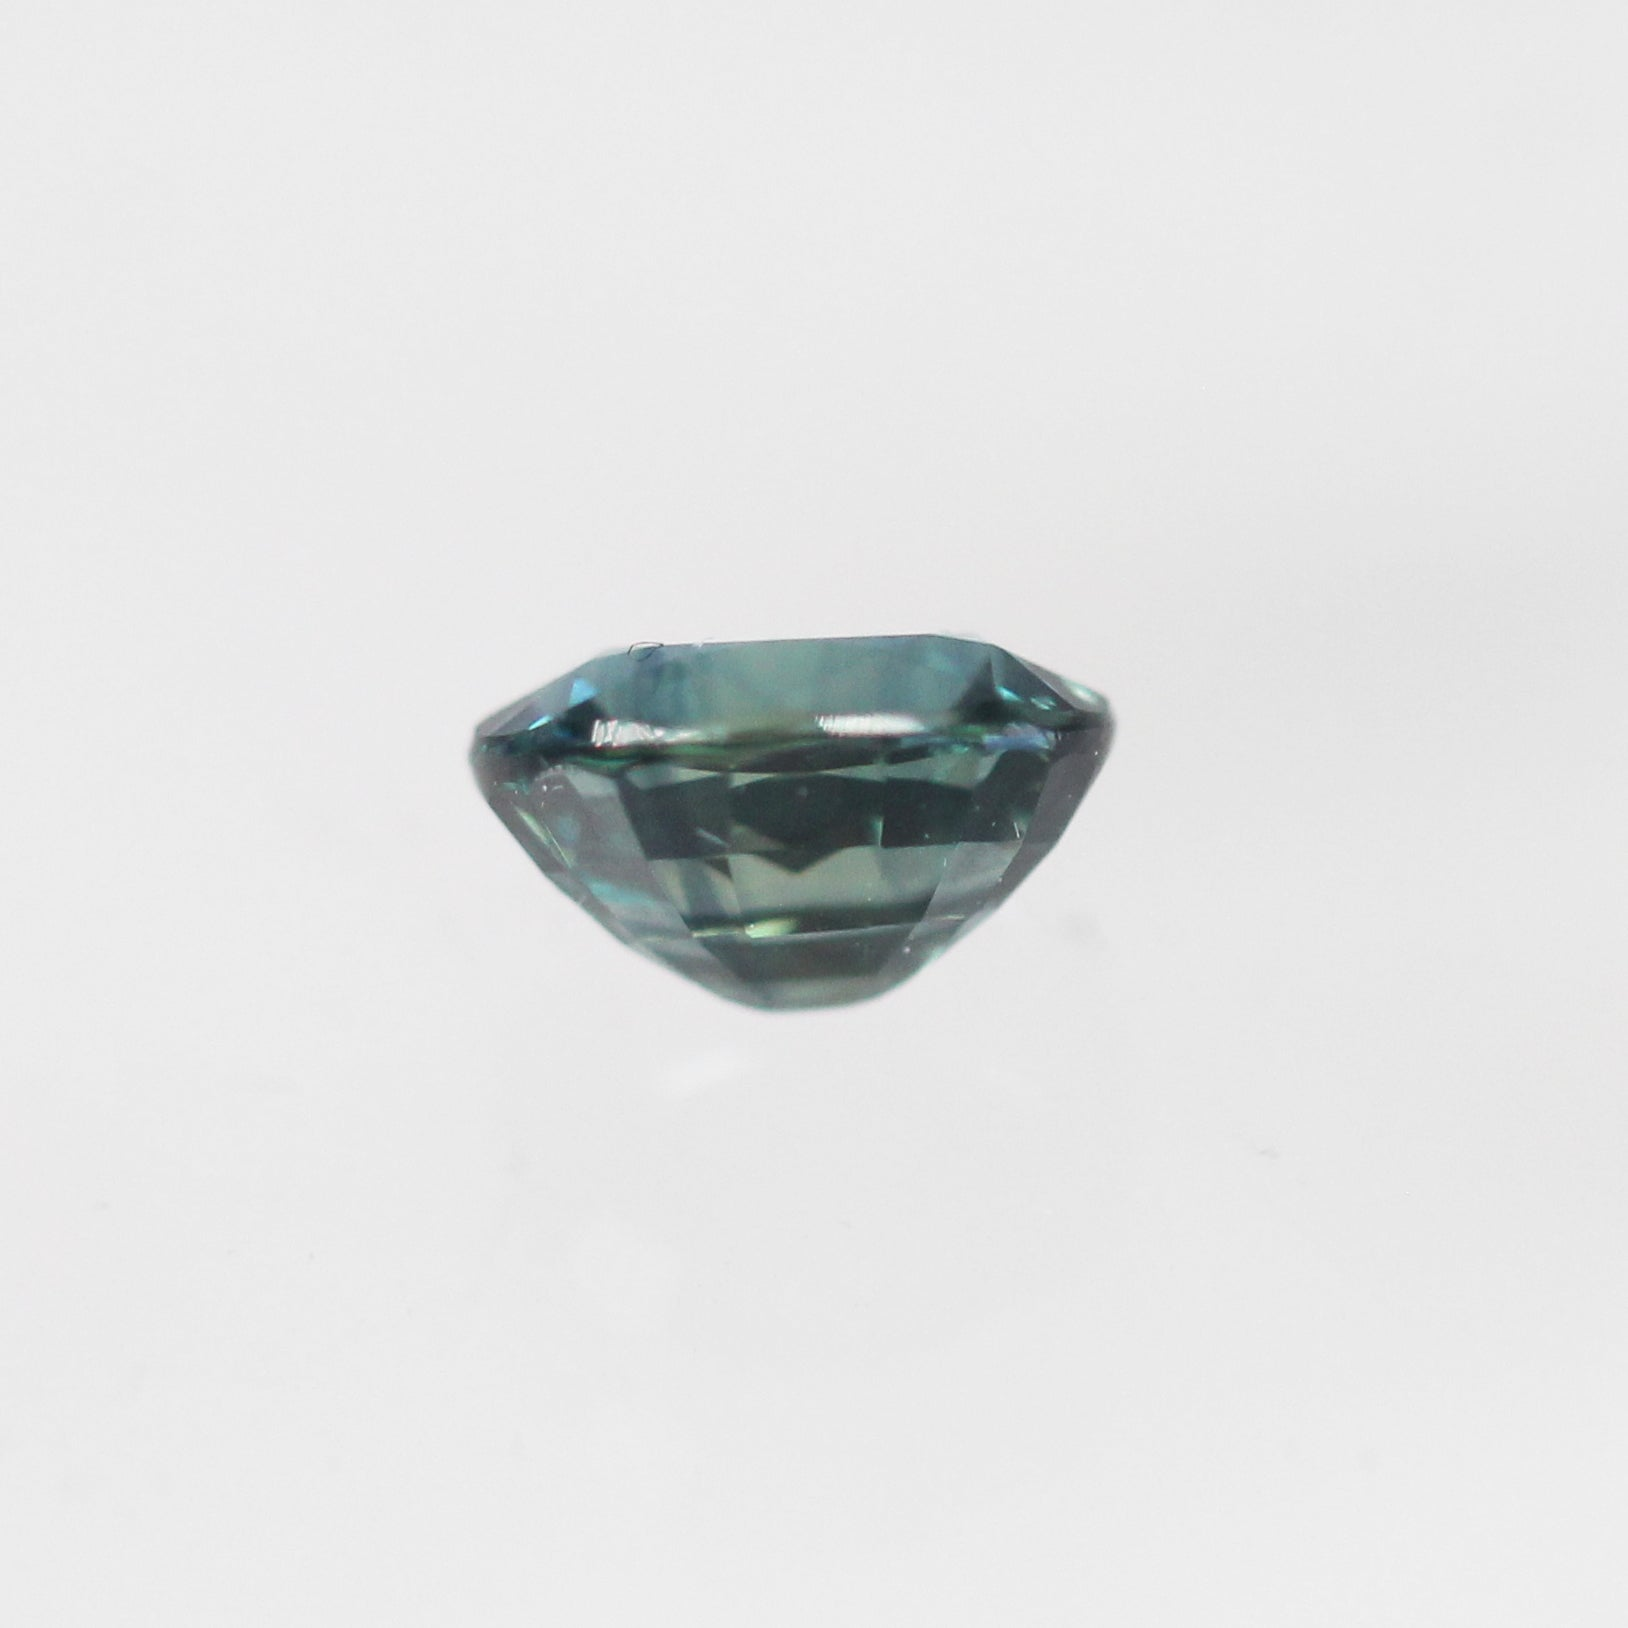 1.86 Carat Oval Sapphire - Inventory Code OBSA186 - Celestial Diamonds ® by Midwinter Co.